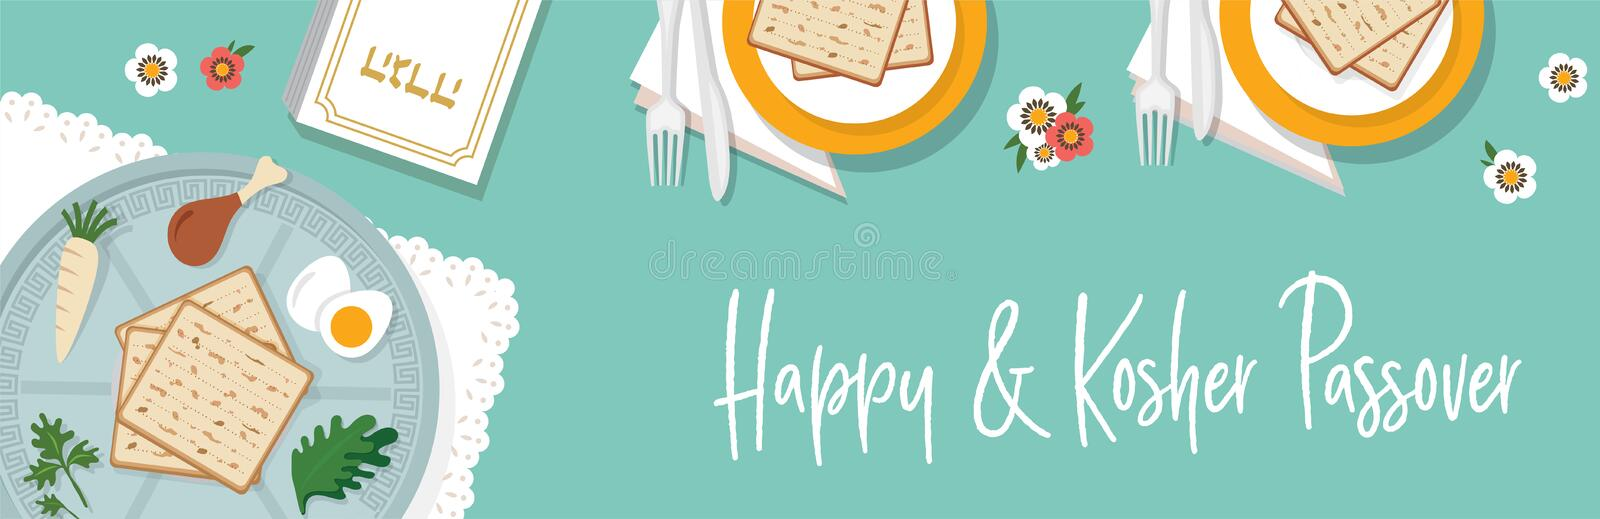 Traditional passover table for Passover dinner with passover plate. vector illustration template banner design vector illustration